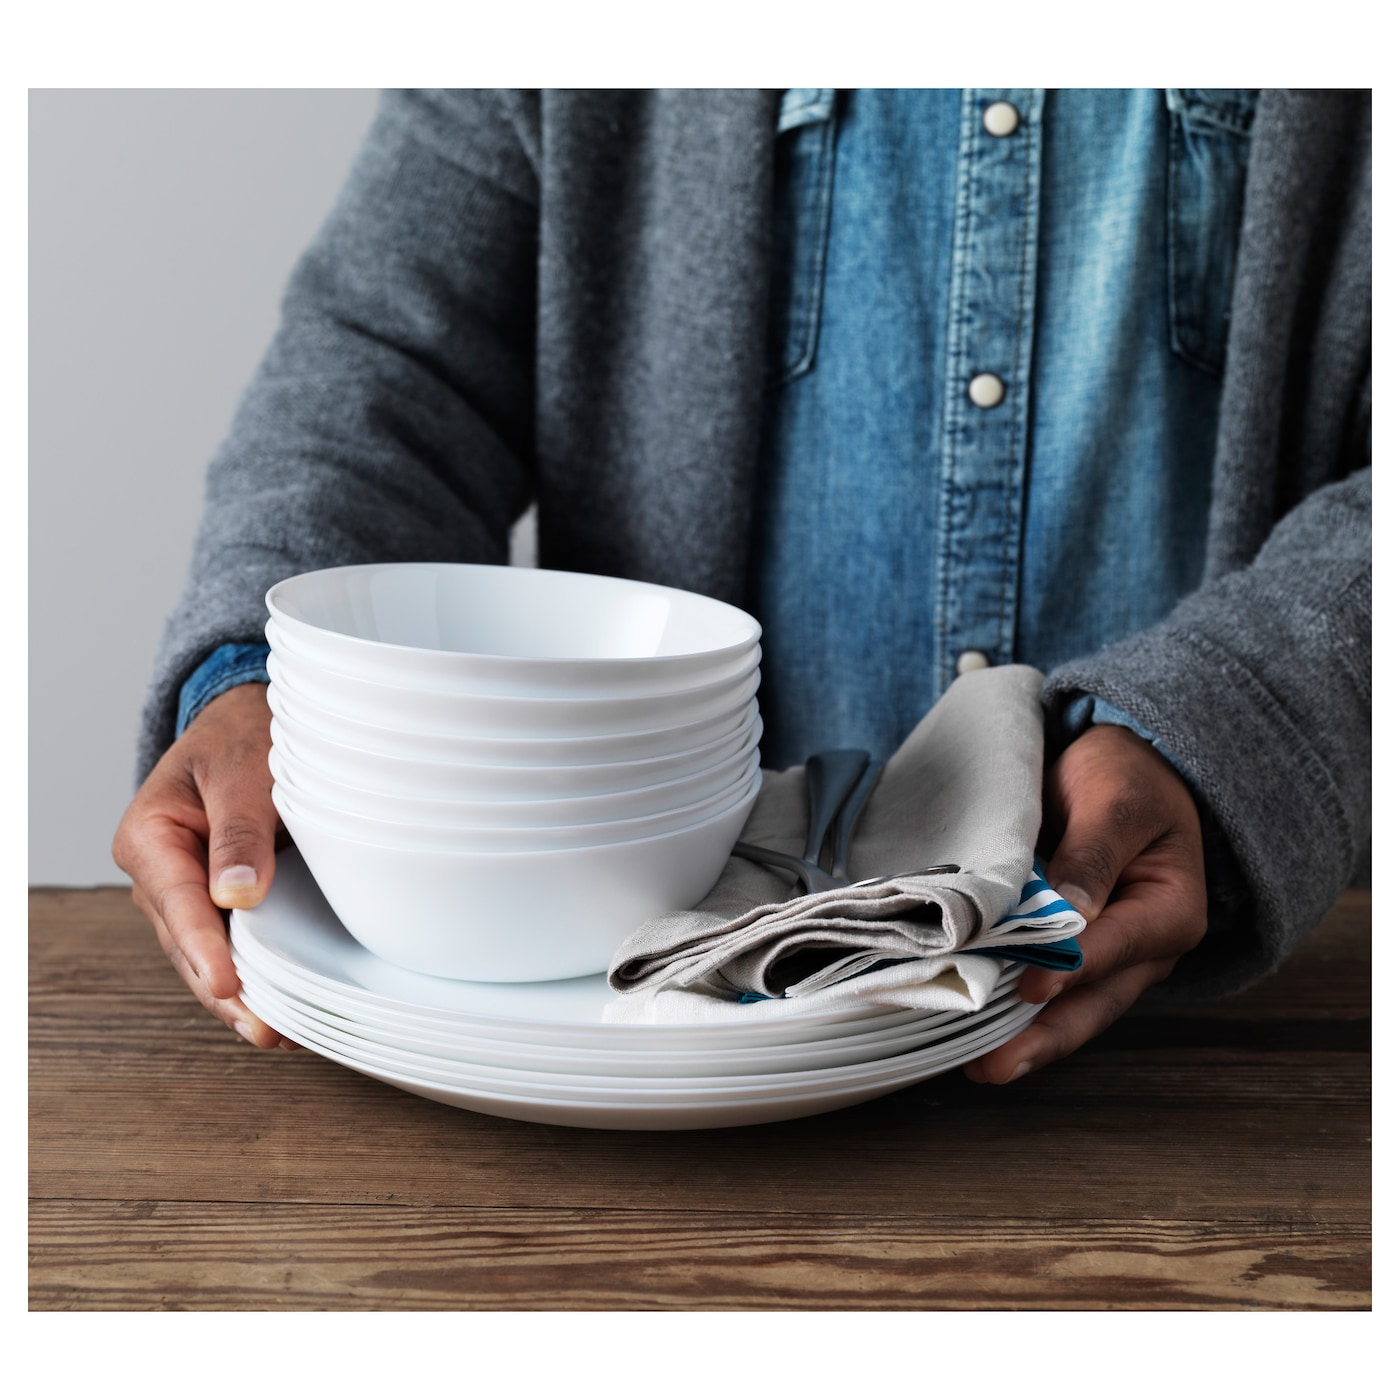 IKEA OFTAST bowl Made of tempered glass, which makes the bowl durable and extra resistant to impact.